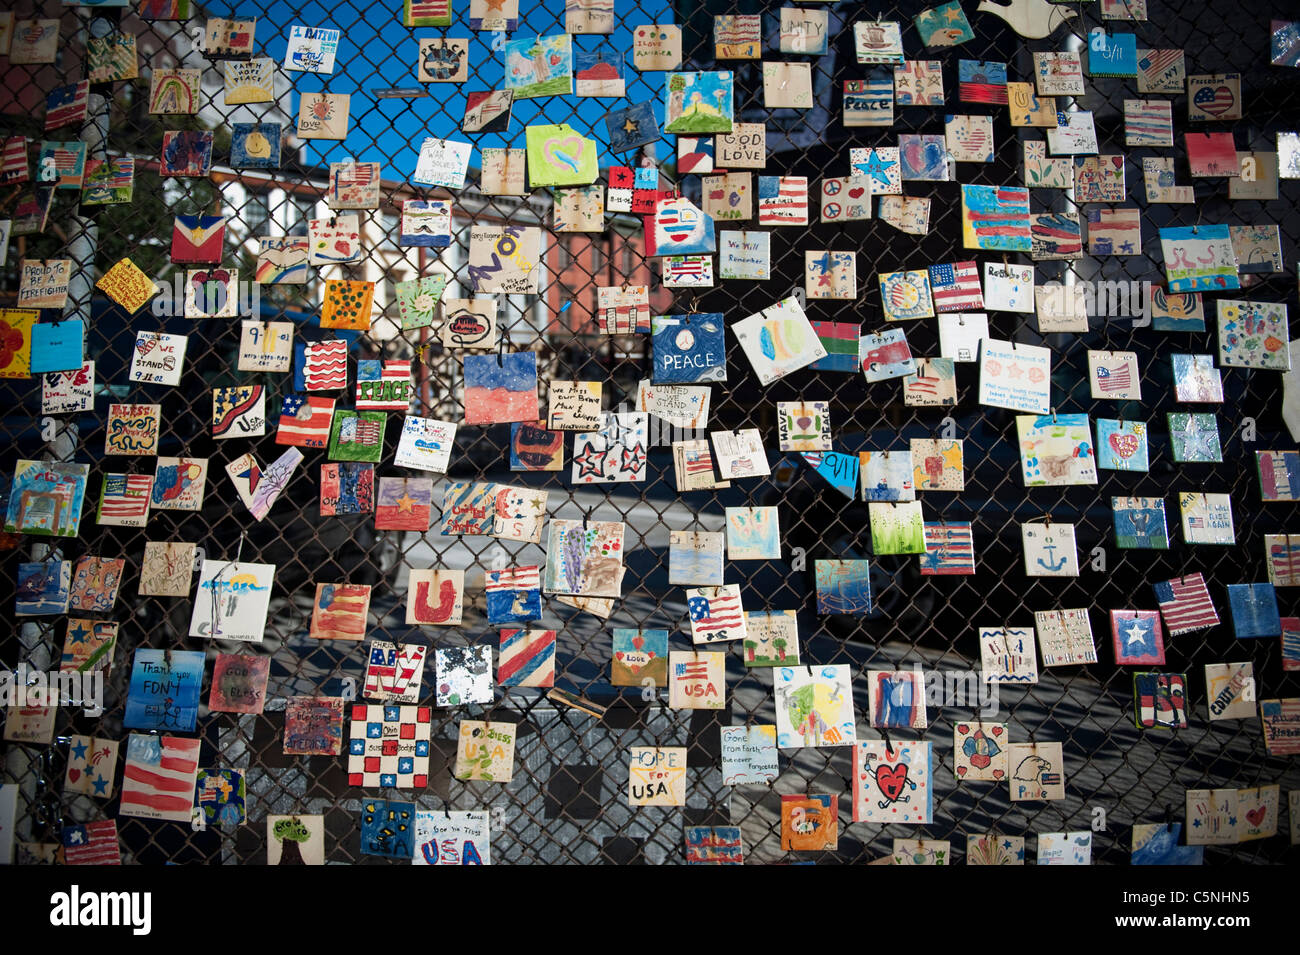 GREENWICH VILLAGE. Dozens of the 9/11 memorial tiles that hung on a fence in the Village from the days after terrorist - Stock Image